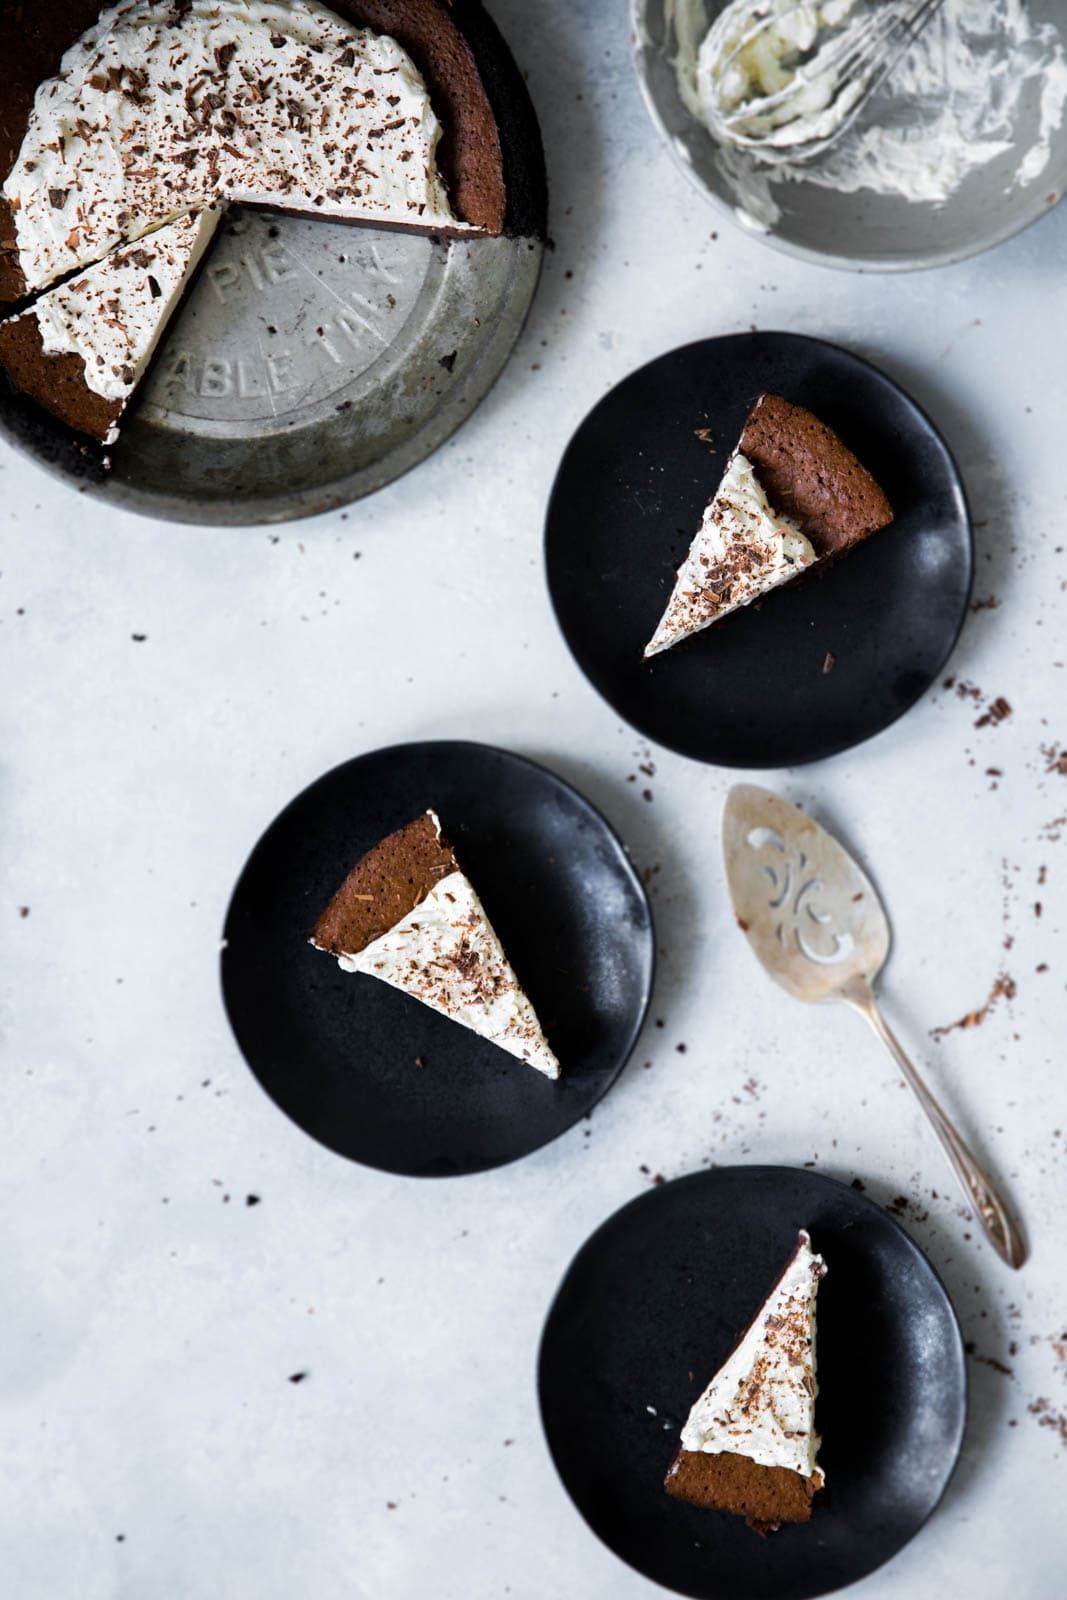 How To Make Chocolate Fudge Pie